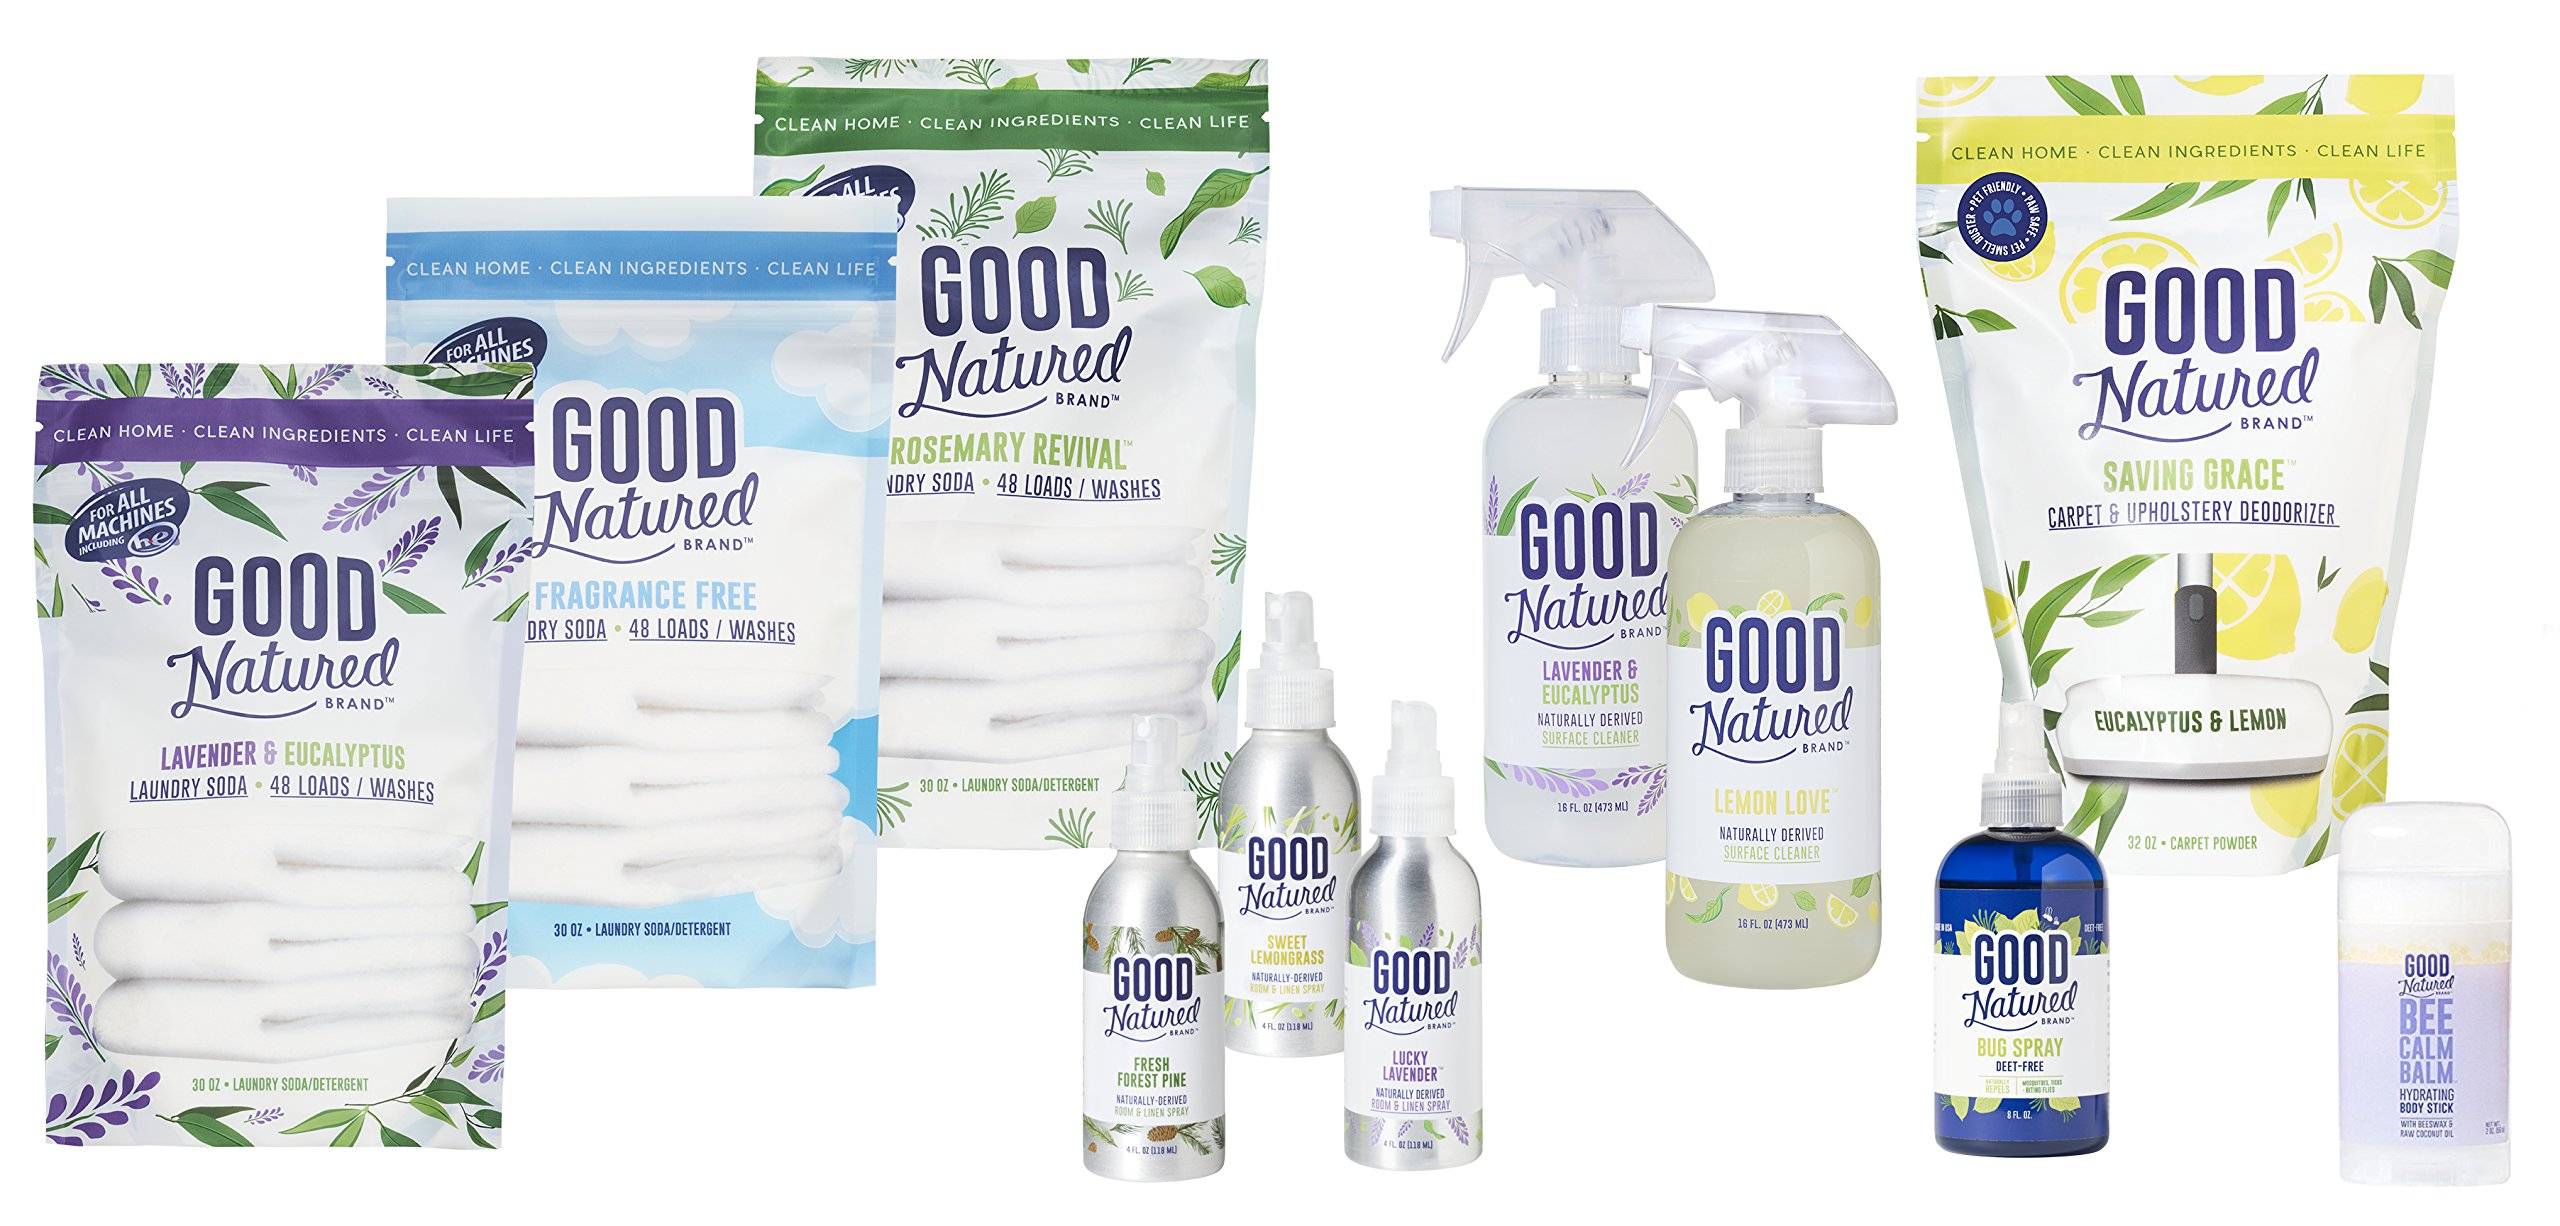 Good Natured Brand The Best All-Natural Pet-Friendly Eco-friendly Saving Grace Carpet & Upholstery Deodorizer, 32 oz. by Good Natured Brand